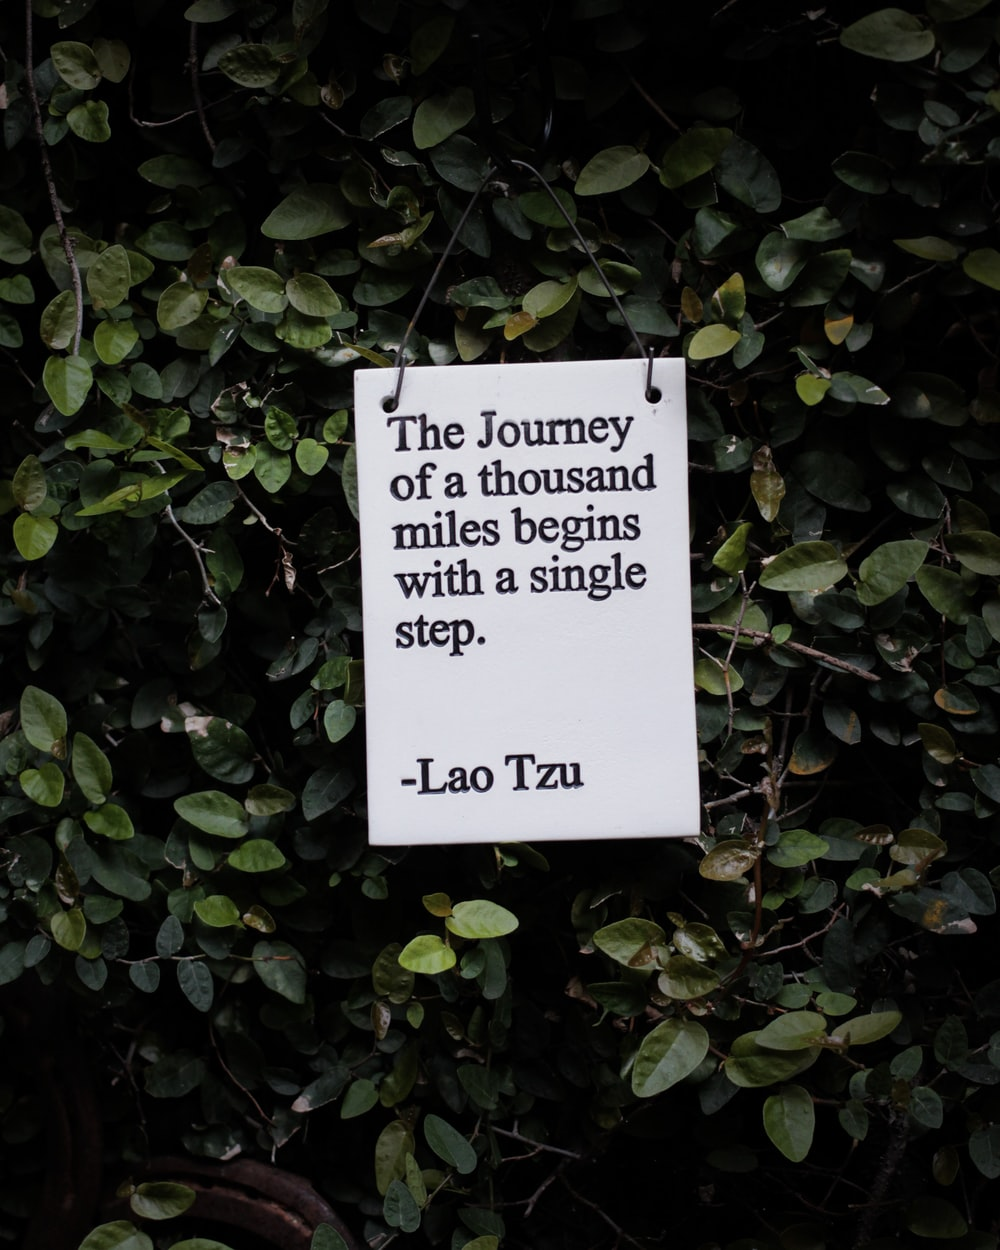 white and black quote board on green plants